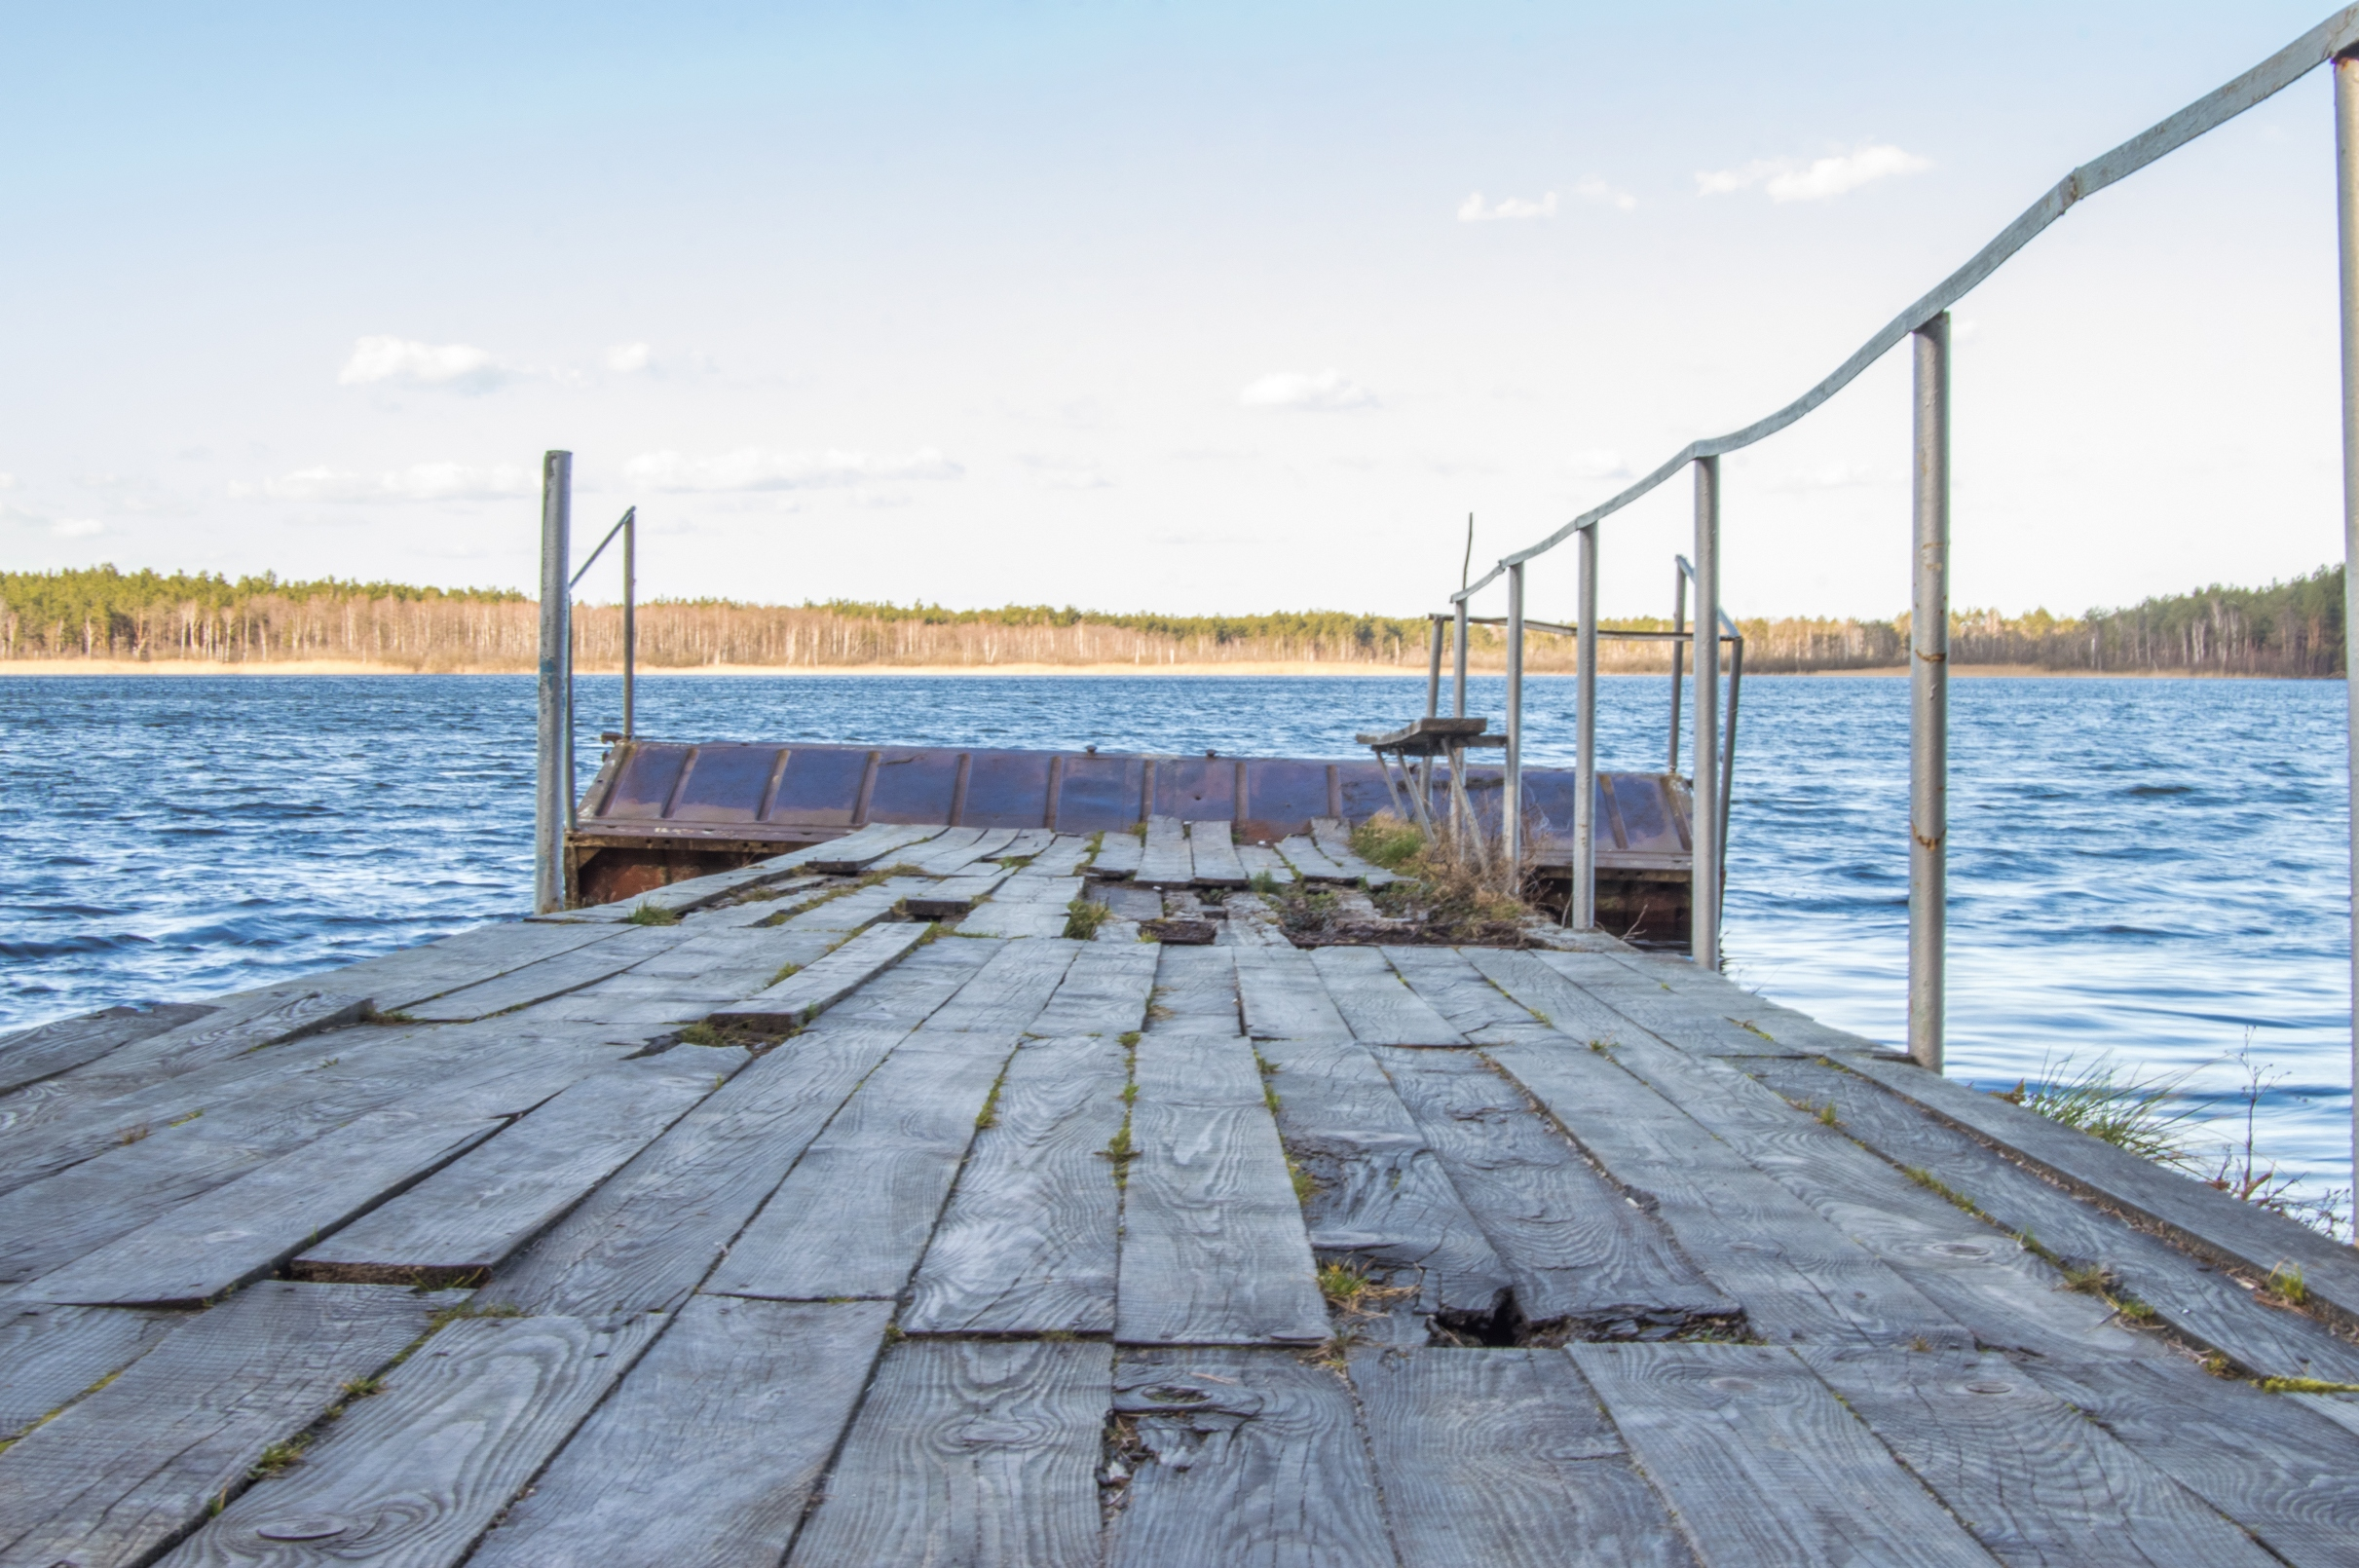 Old wooden pier with holes in rotten boards on the background of fores, River, Light, Natural, Nature, HQ Photo